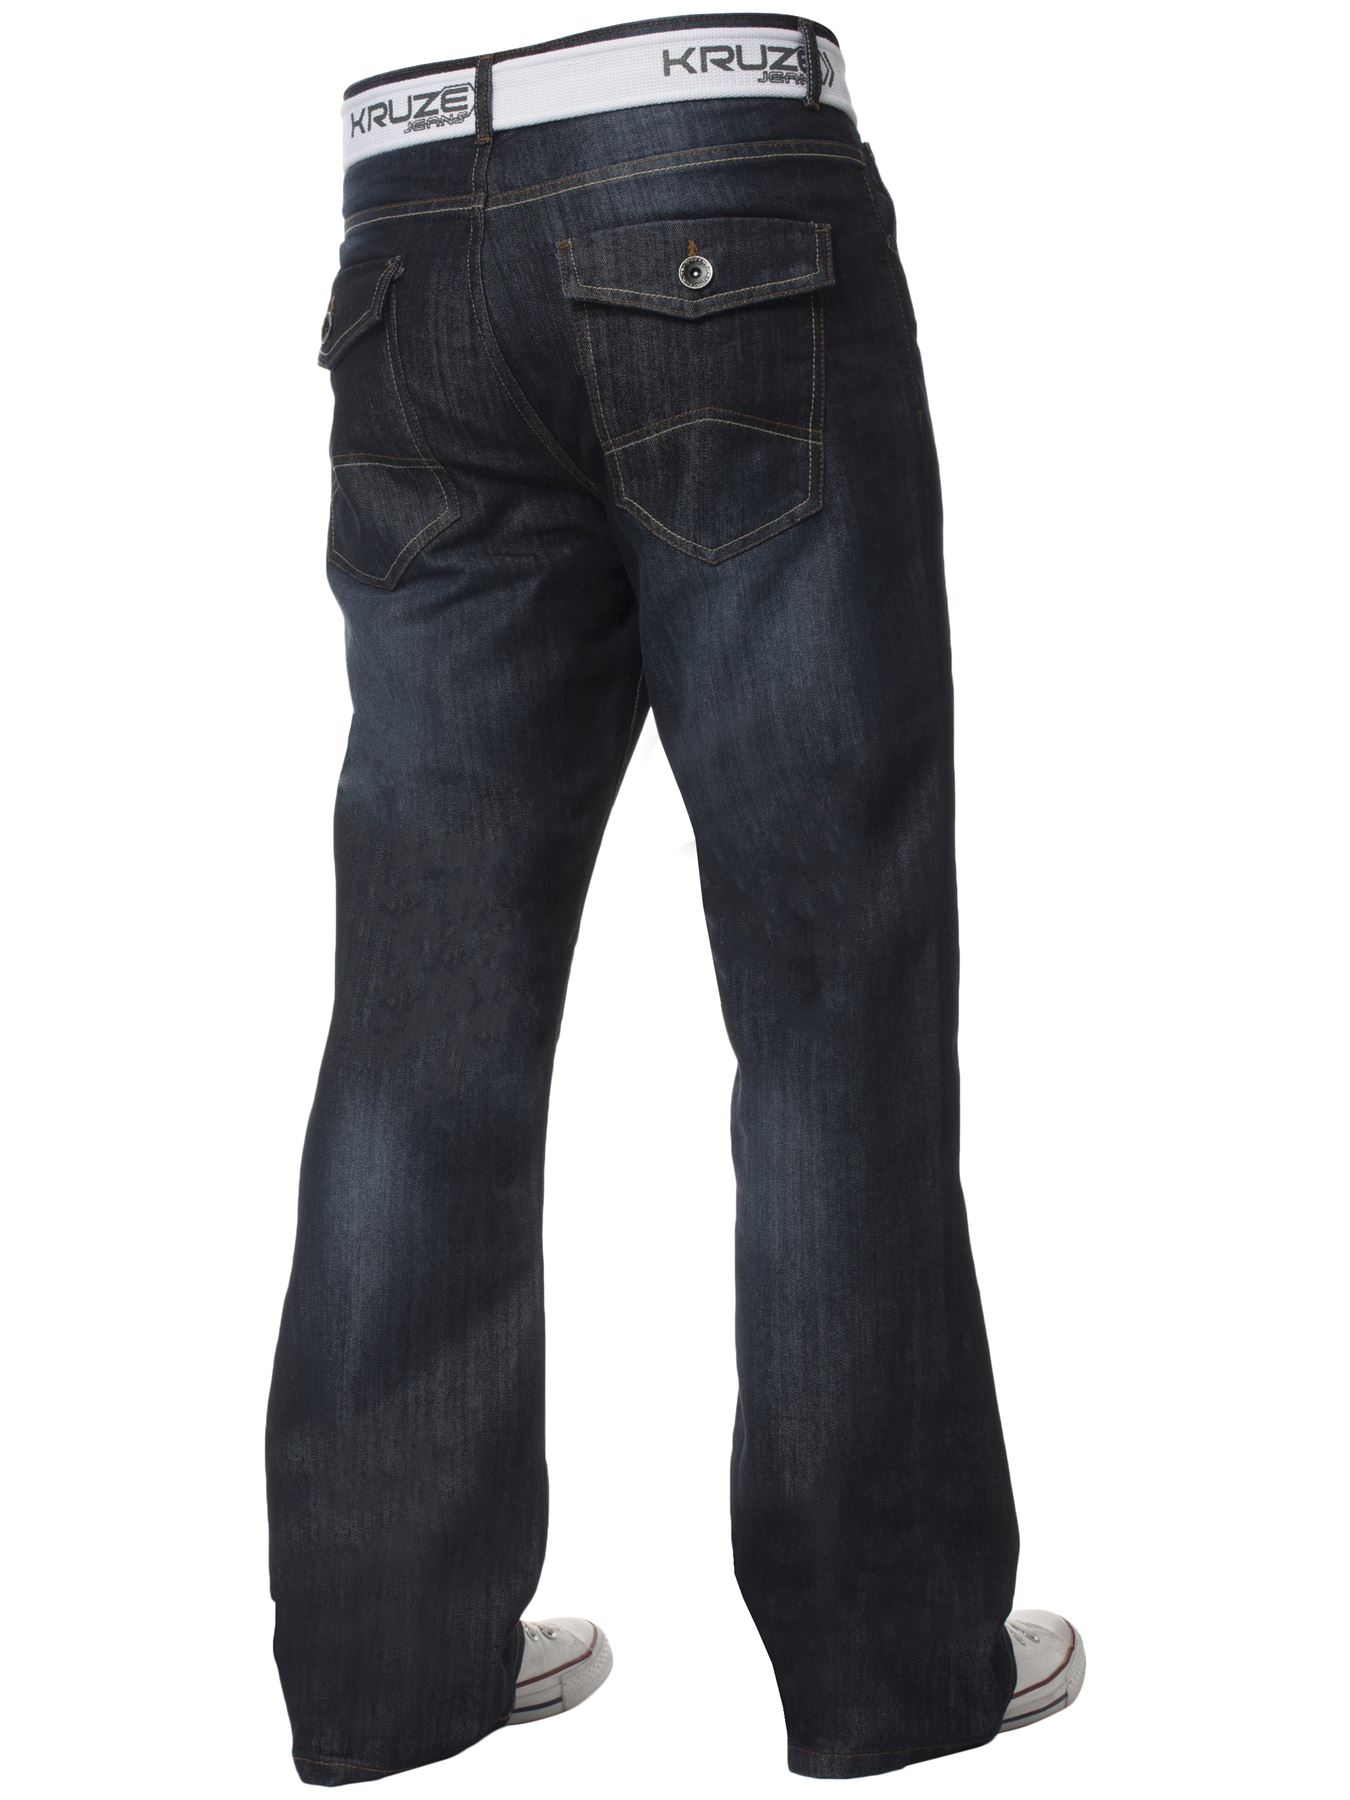 Kruze-Mens-Bootcut-Jeans-Flared-Wide-Leg-Denim-Pants-Big-Tall-King-All-Waists thumbnail 17